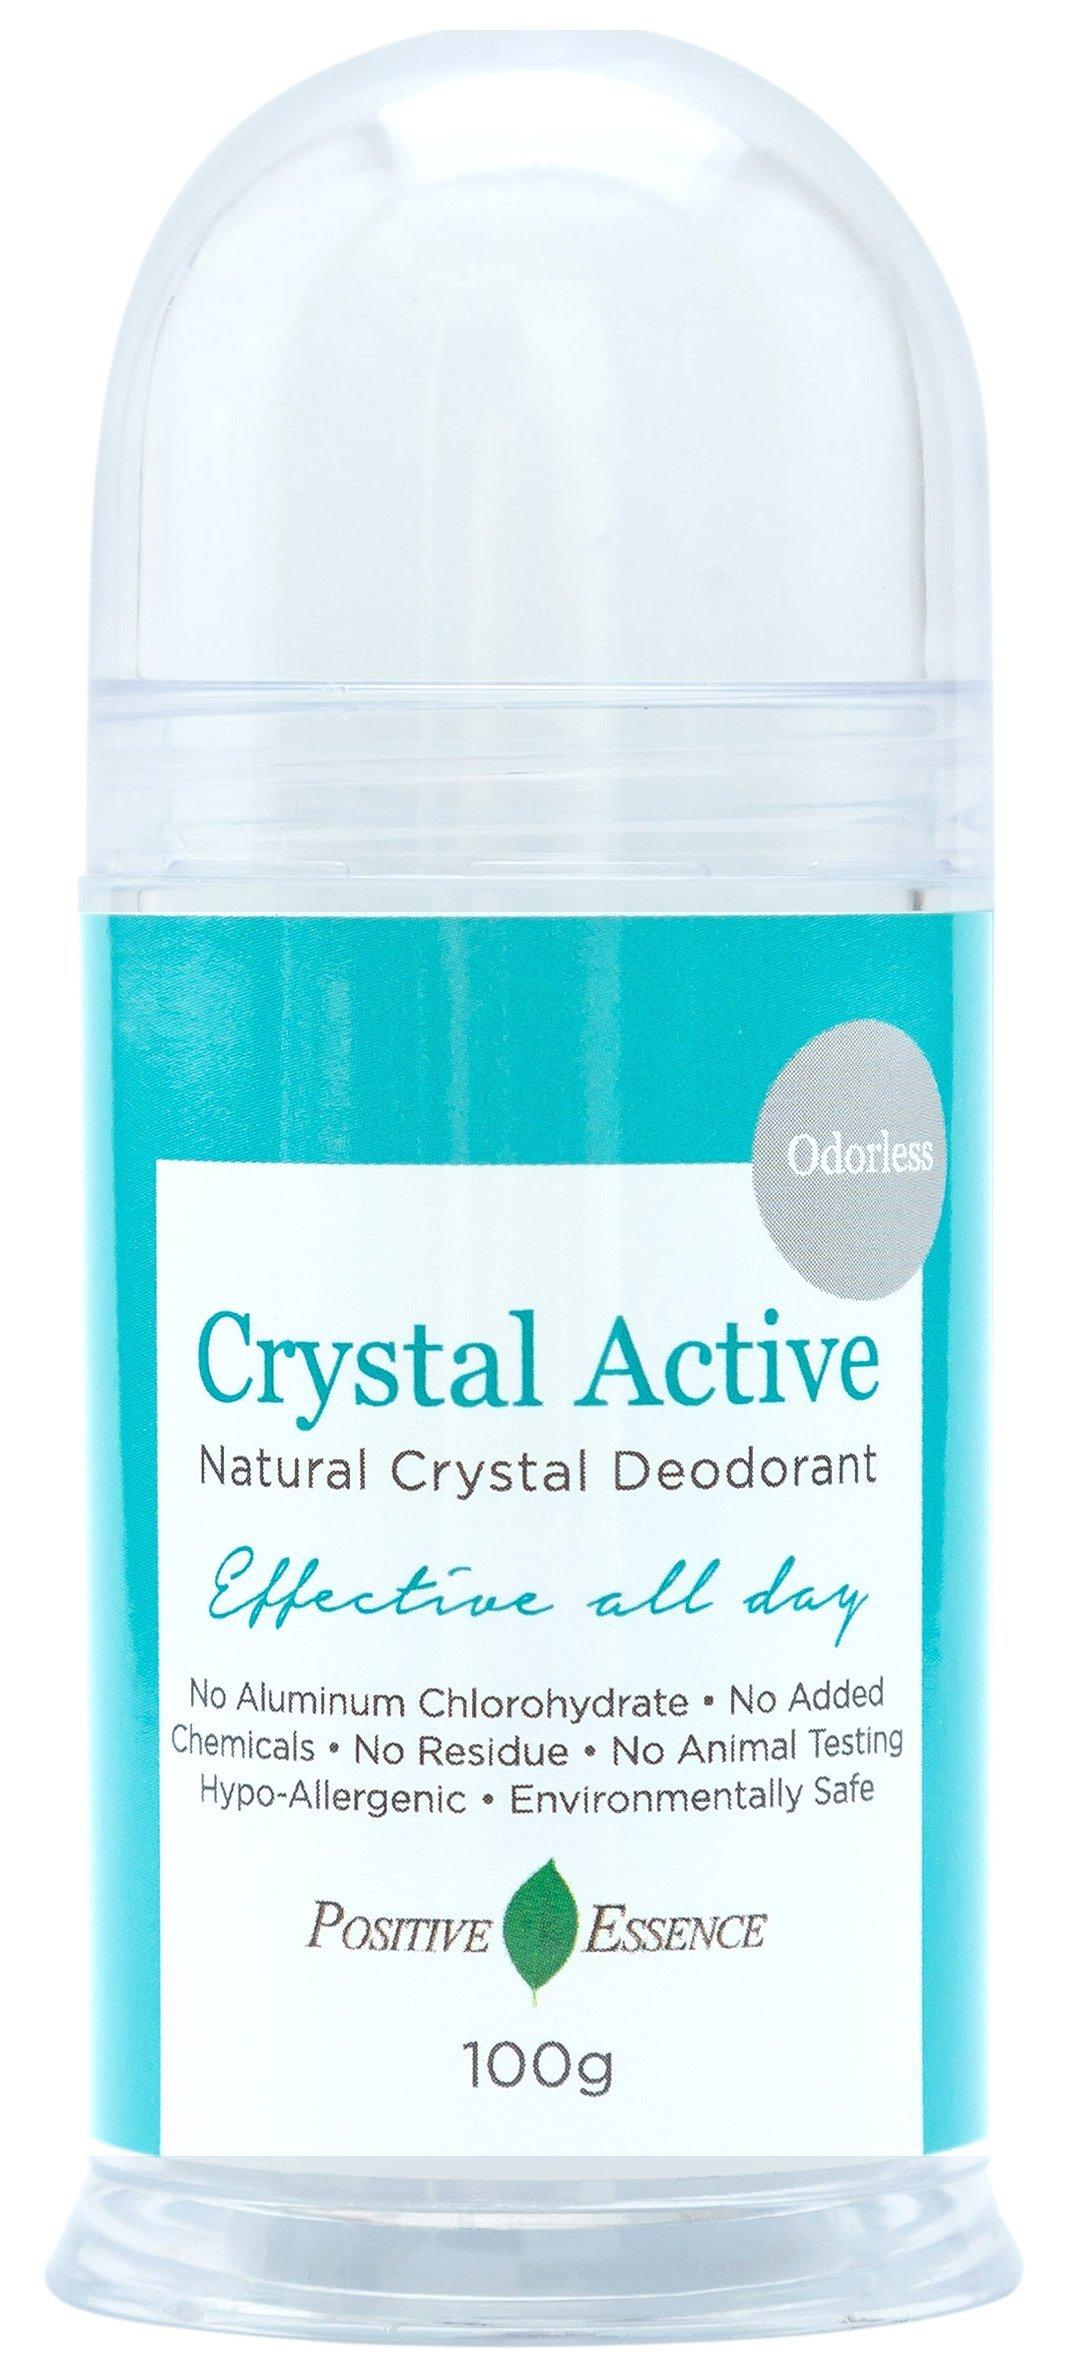 Crystal Deodorant Stone - Crystal Active - 100% NATURAL, LONG LASTING, Single Ingredient, No Aluminum Chlorohydrate or Chemicals - Unscented/Odorless, Pushup Stick, Thai Rock for Men and Women, 100g